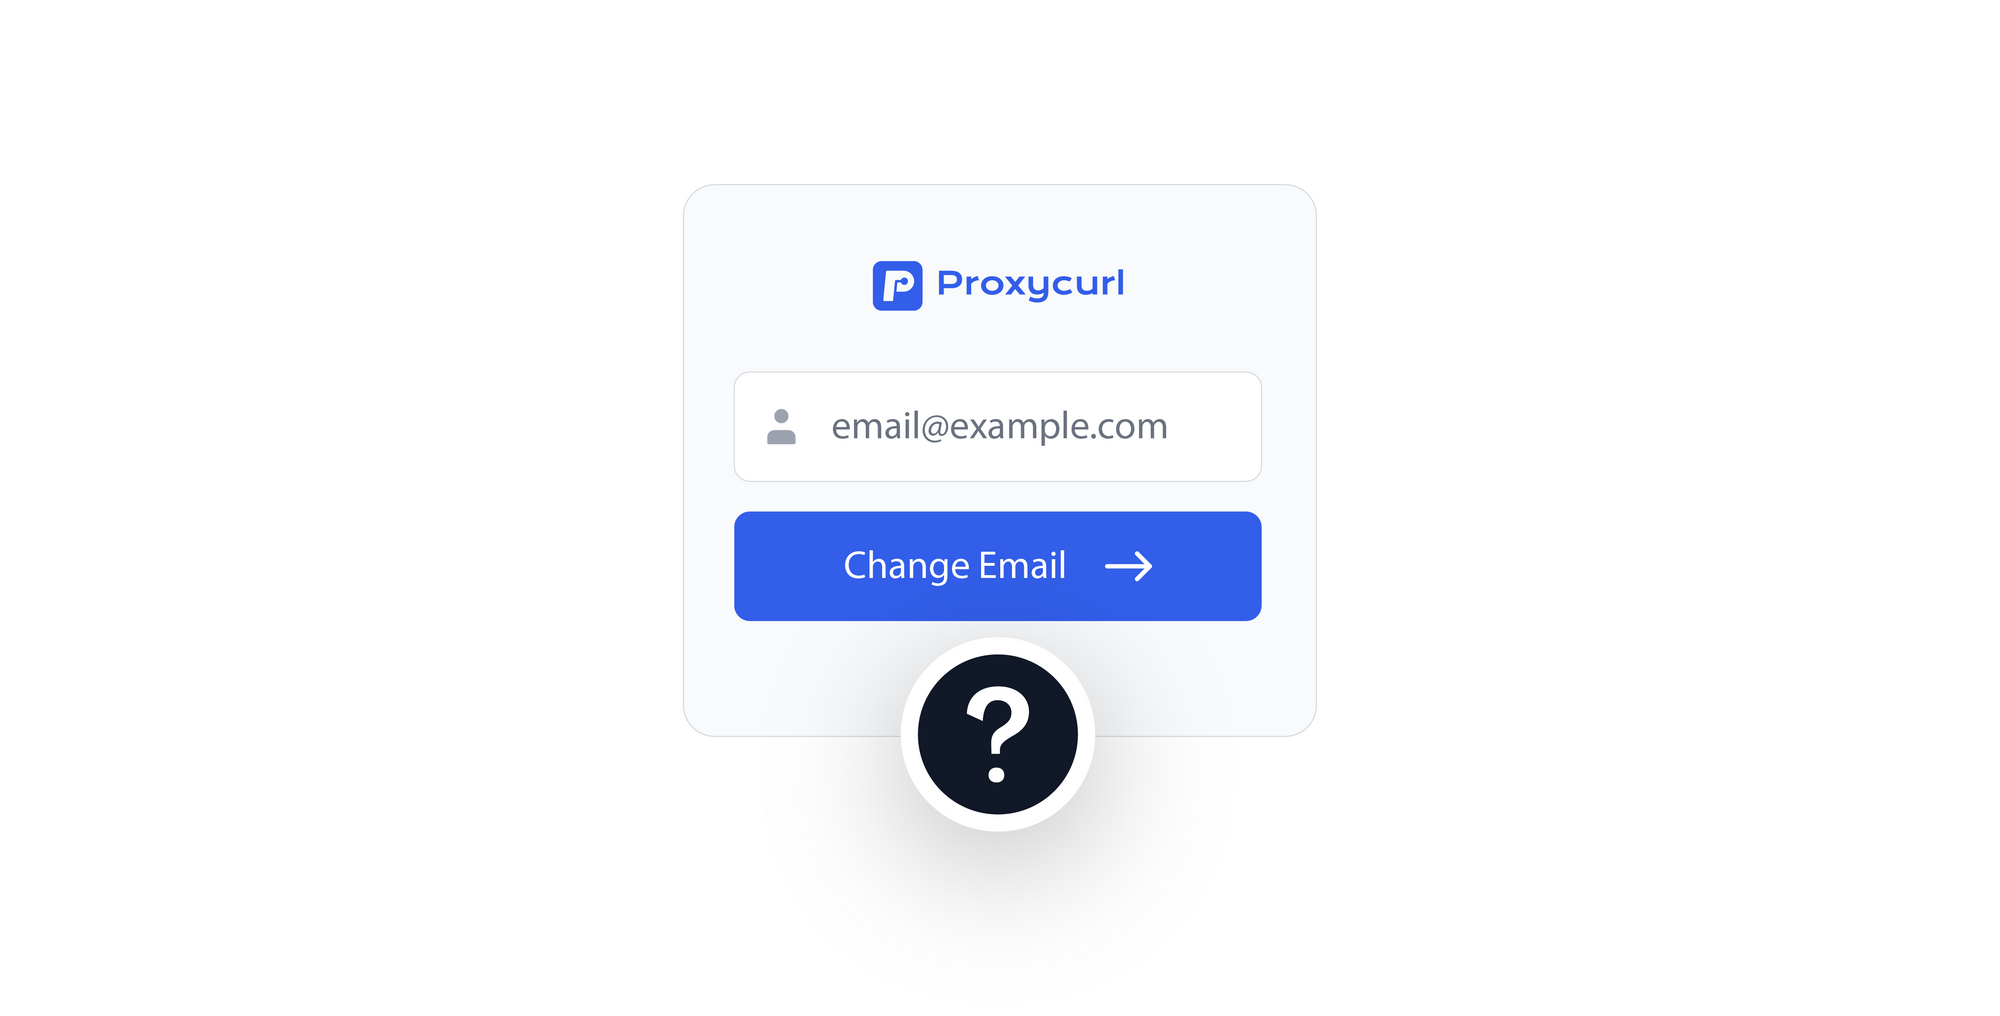 How to change your login email address in Proxycurl?